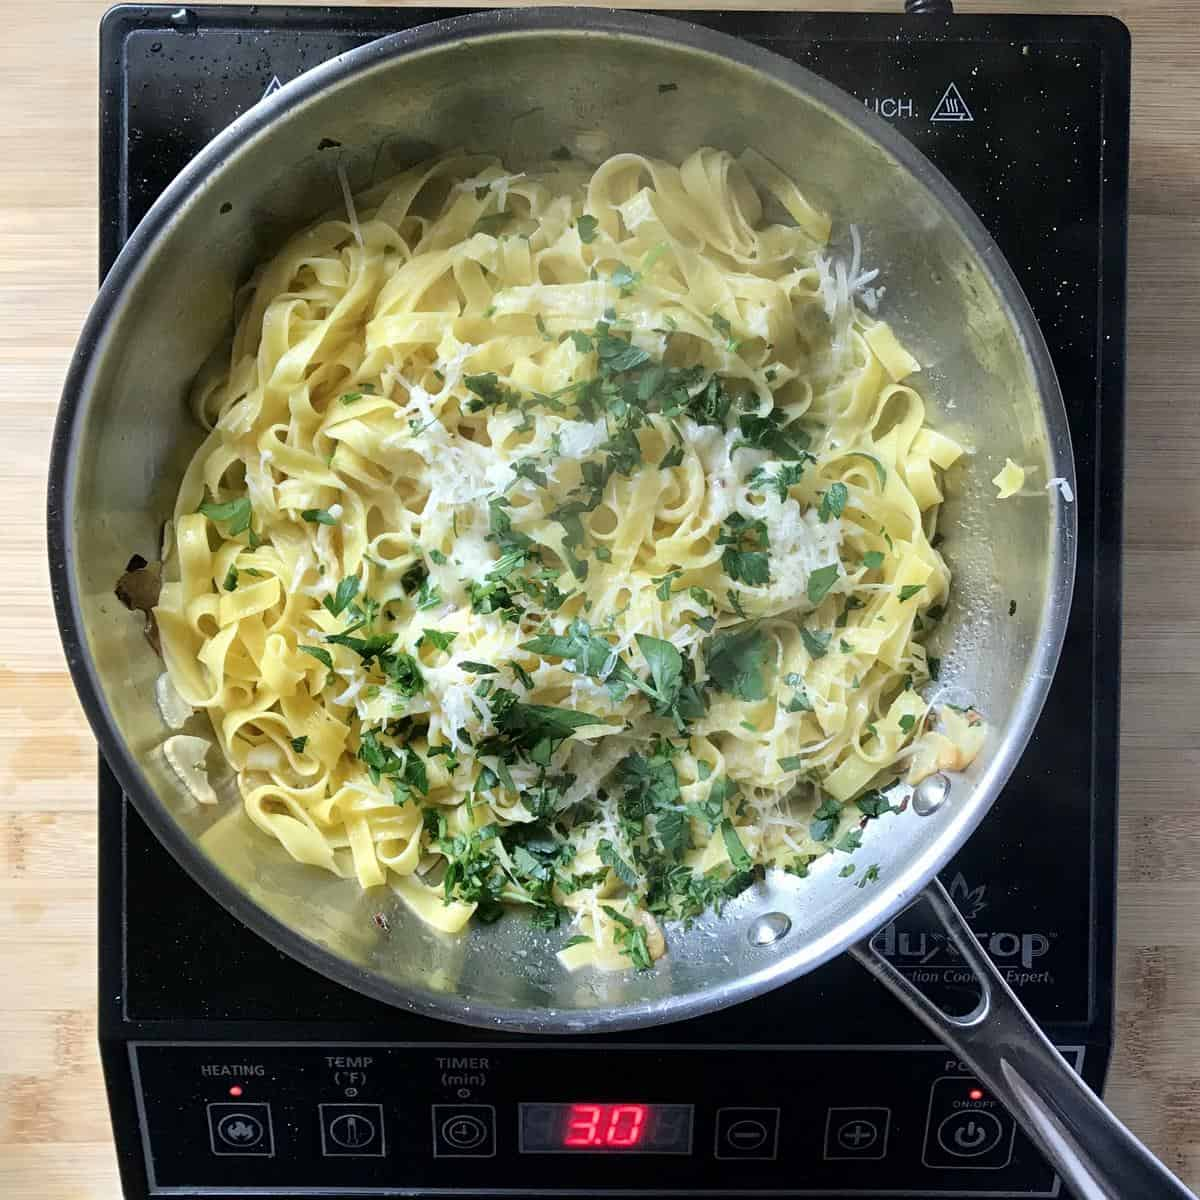 Chopped Italian parsley and grated cheese added to a pan of pasta.